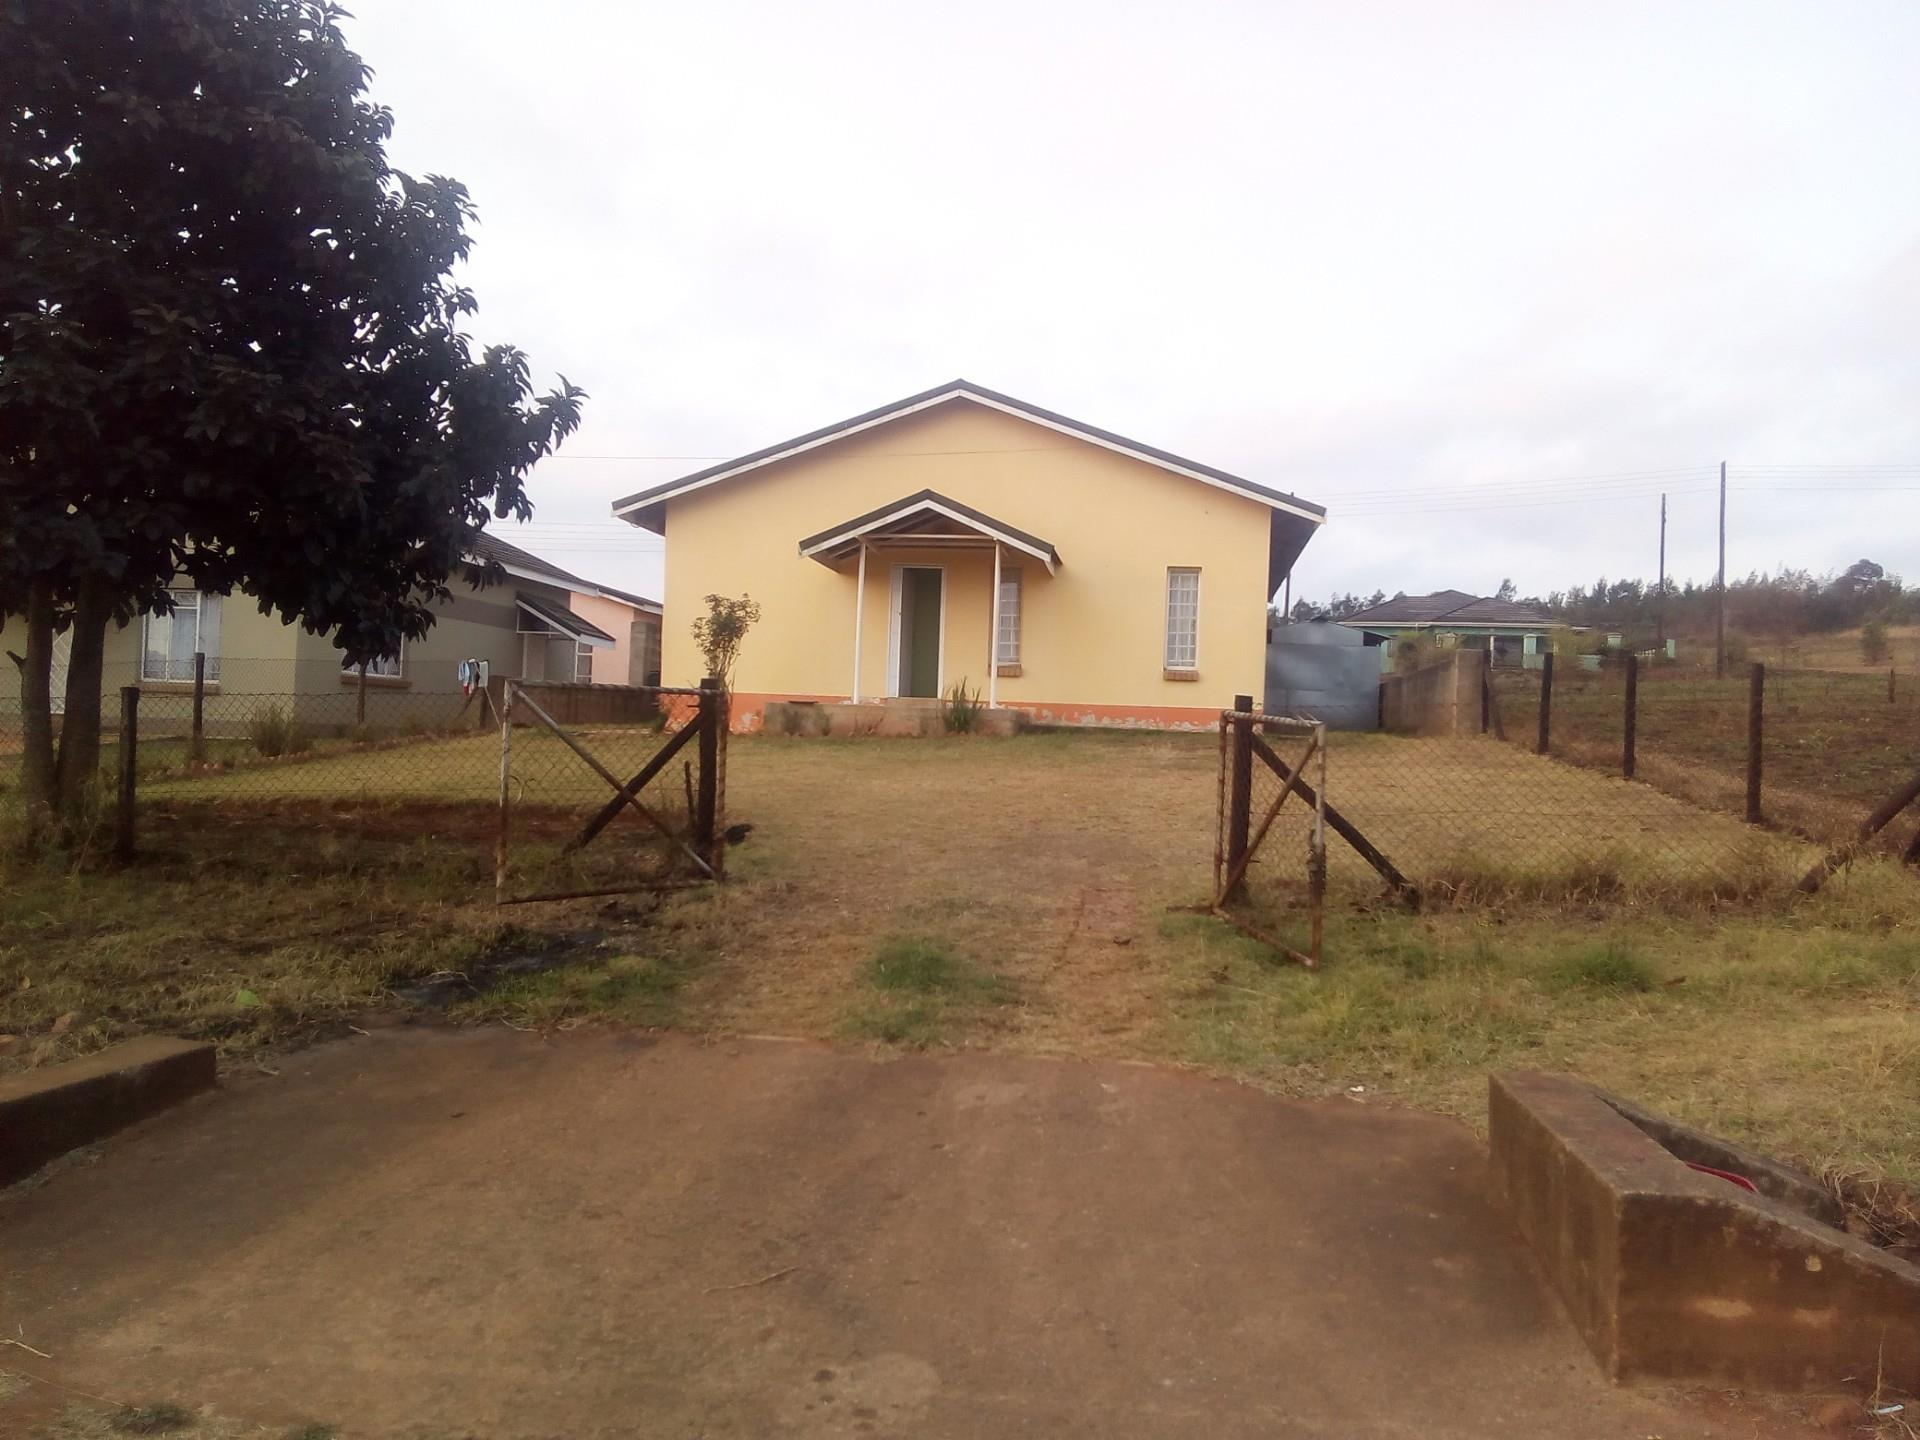 2 Bedroom House For Sale in Nhlangano